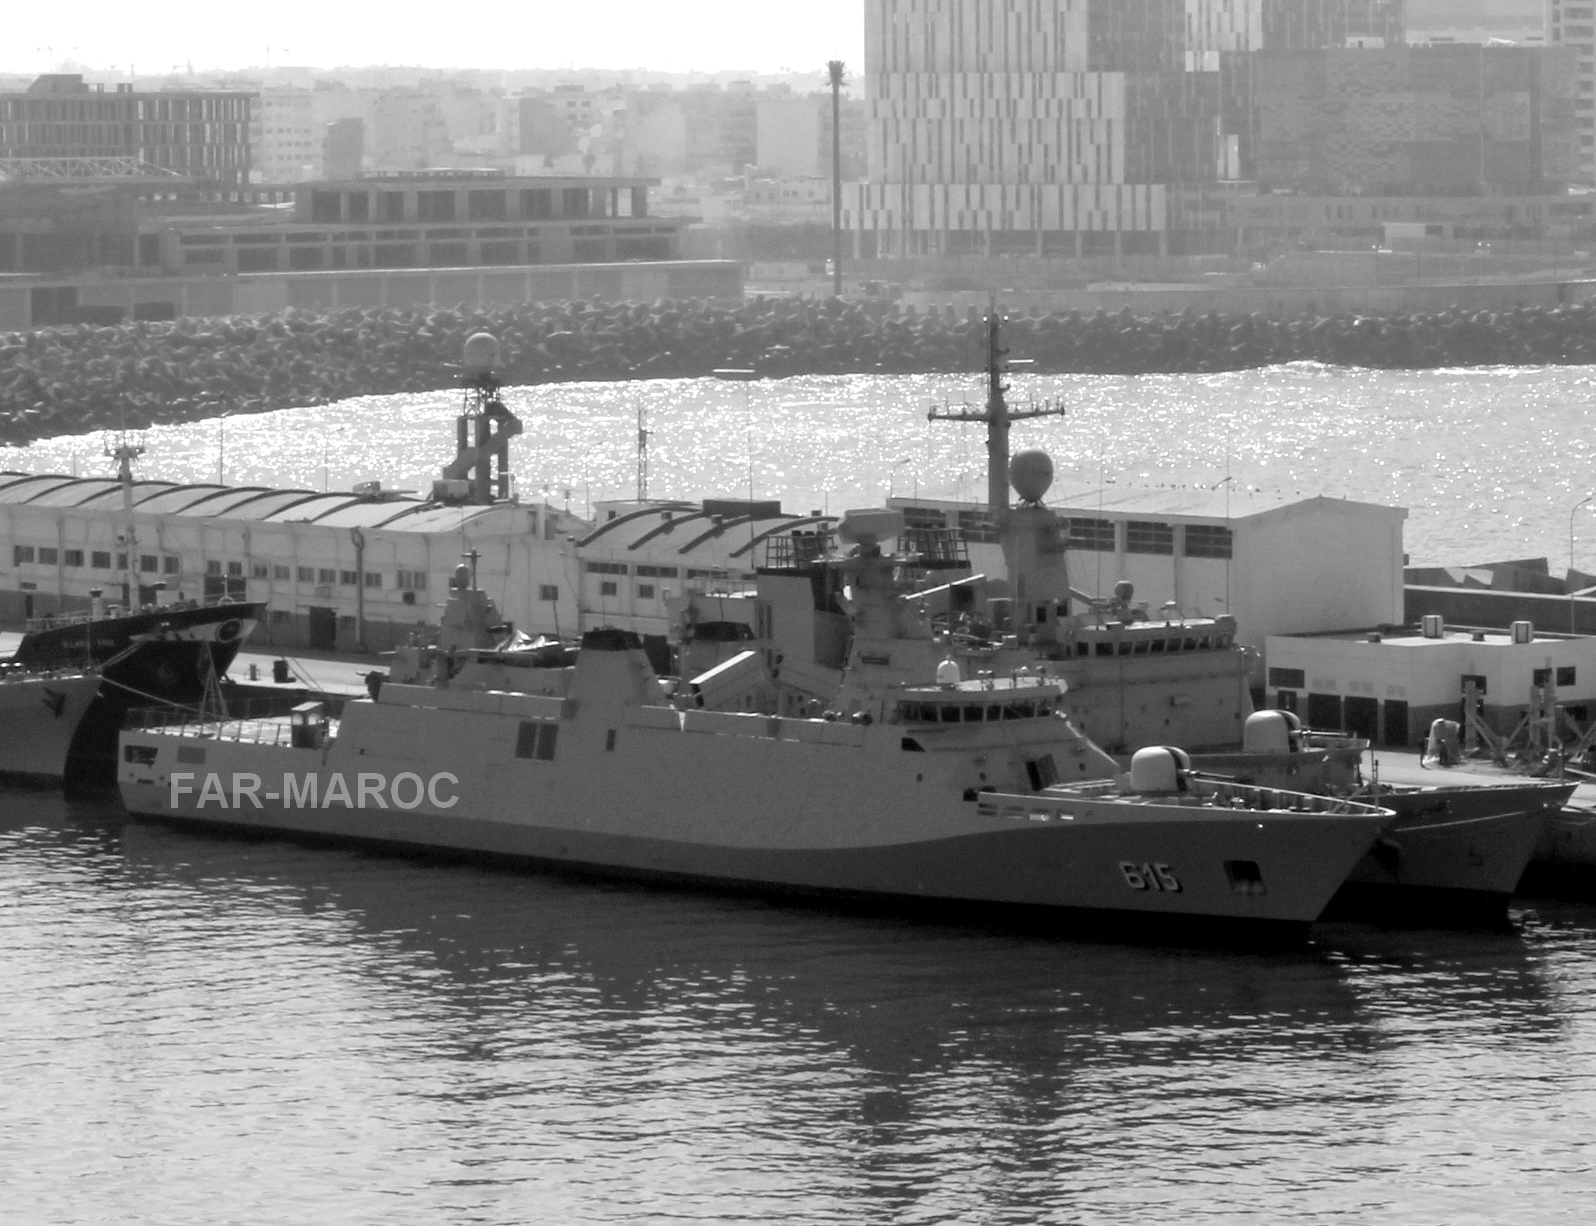 Royal Moroccan Navy Sigma class frigates / Frégates marocaines multimissions Sigma - Page 25 47078874594_b9a6ca4bb8_o